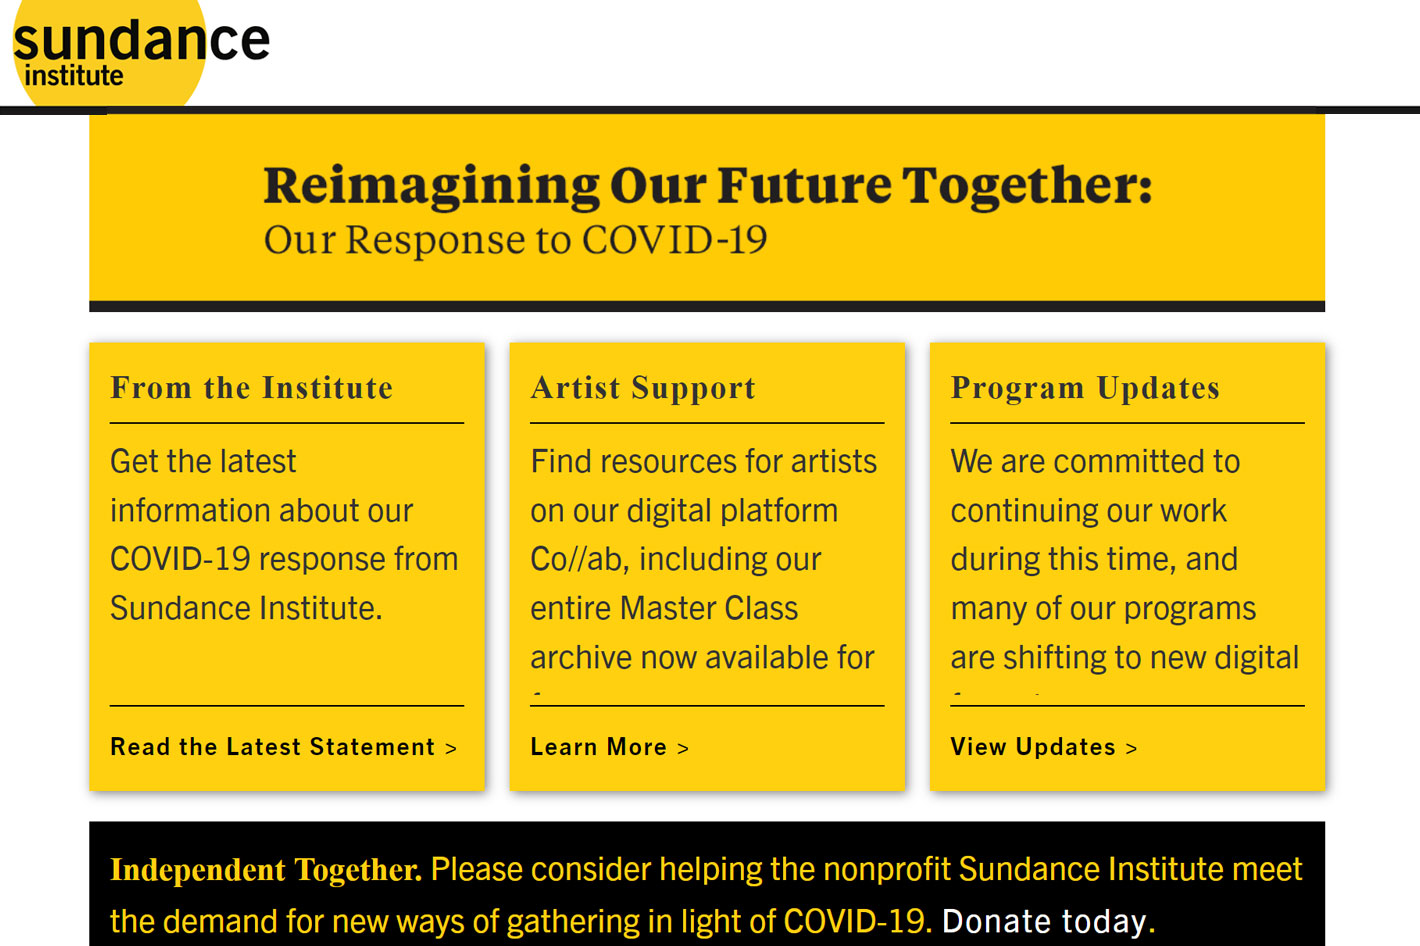 Sundance Institute: $1 million in emergency relief for artists and organizations